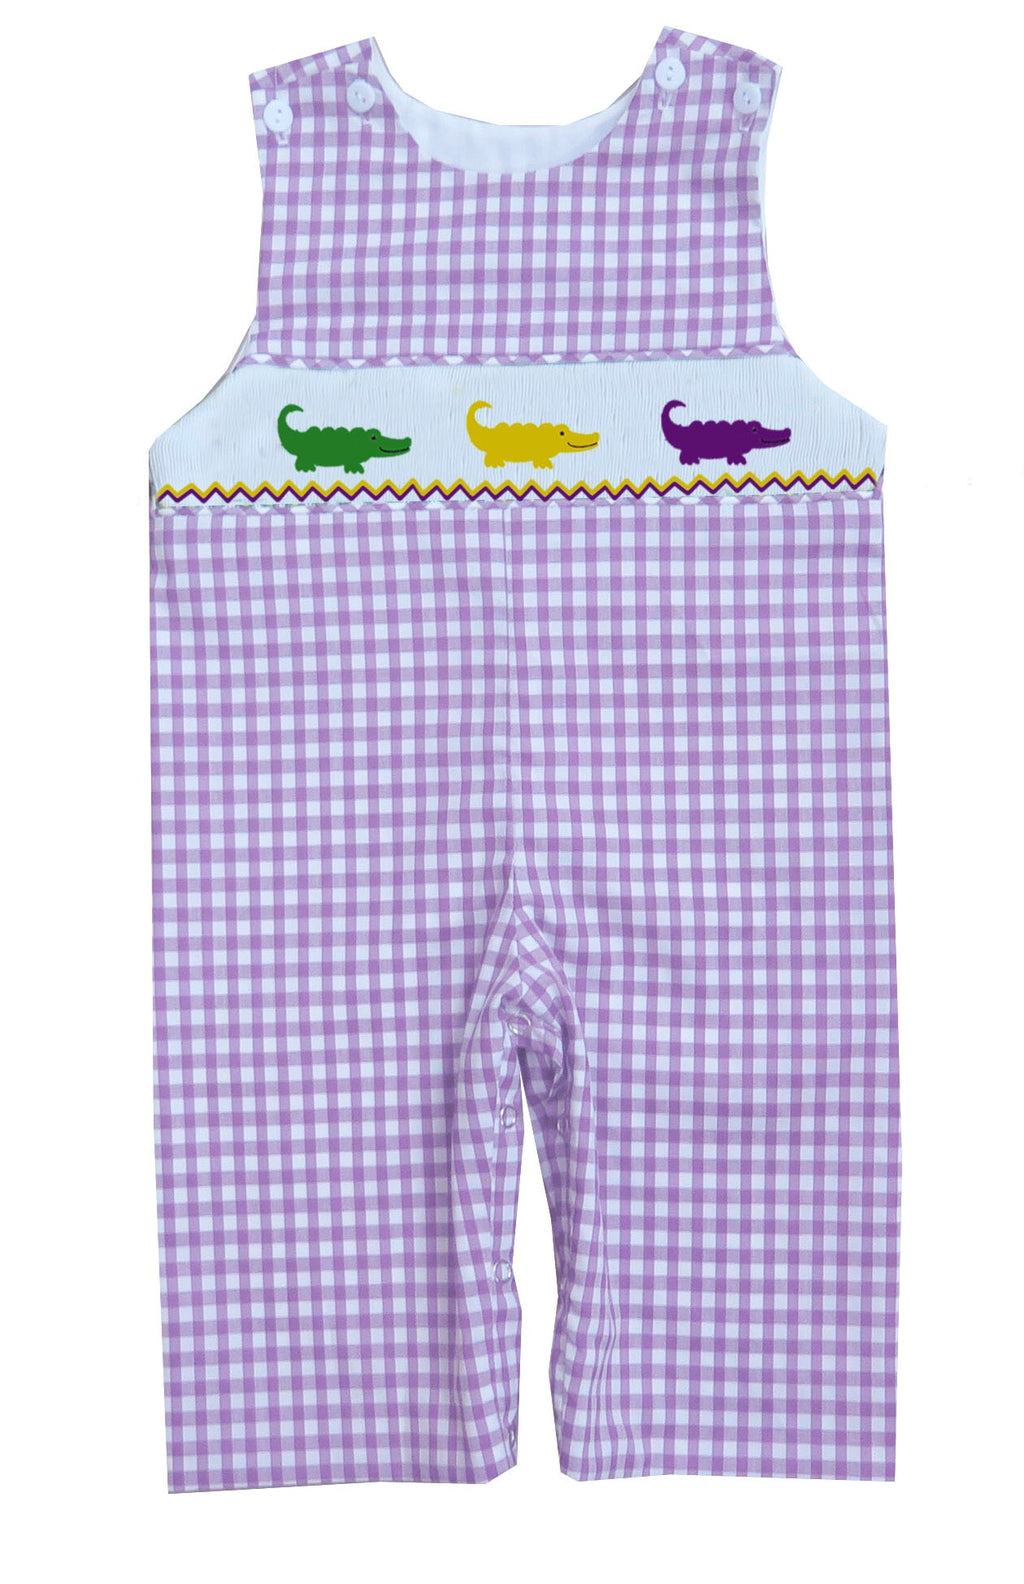 2019 Mardi Gras Alligator Gingham Longall